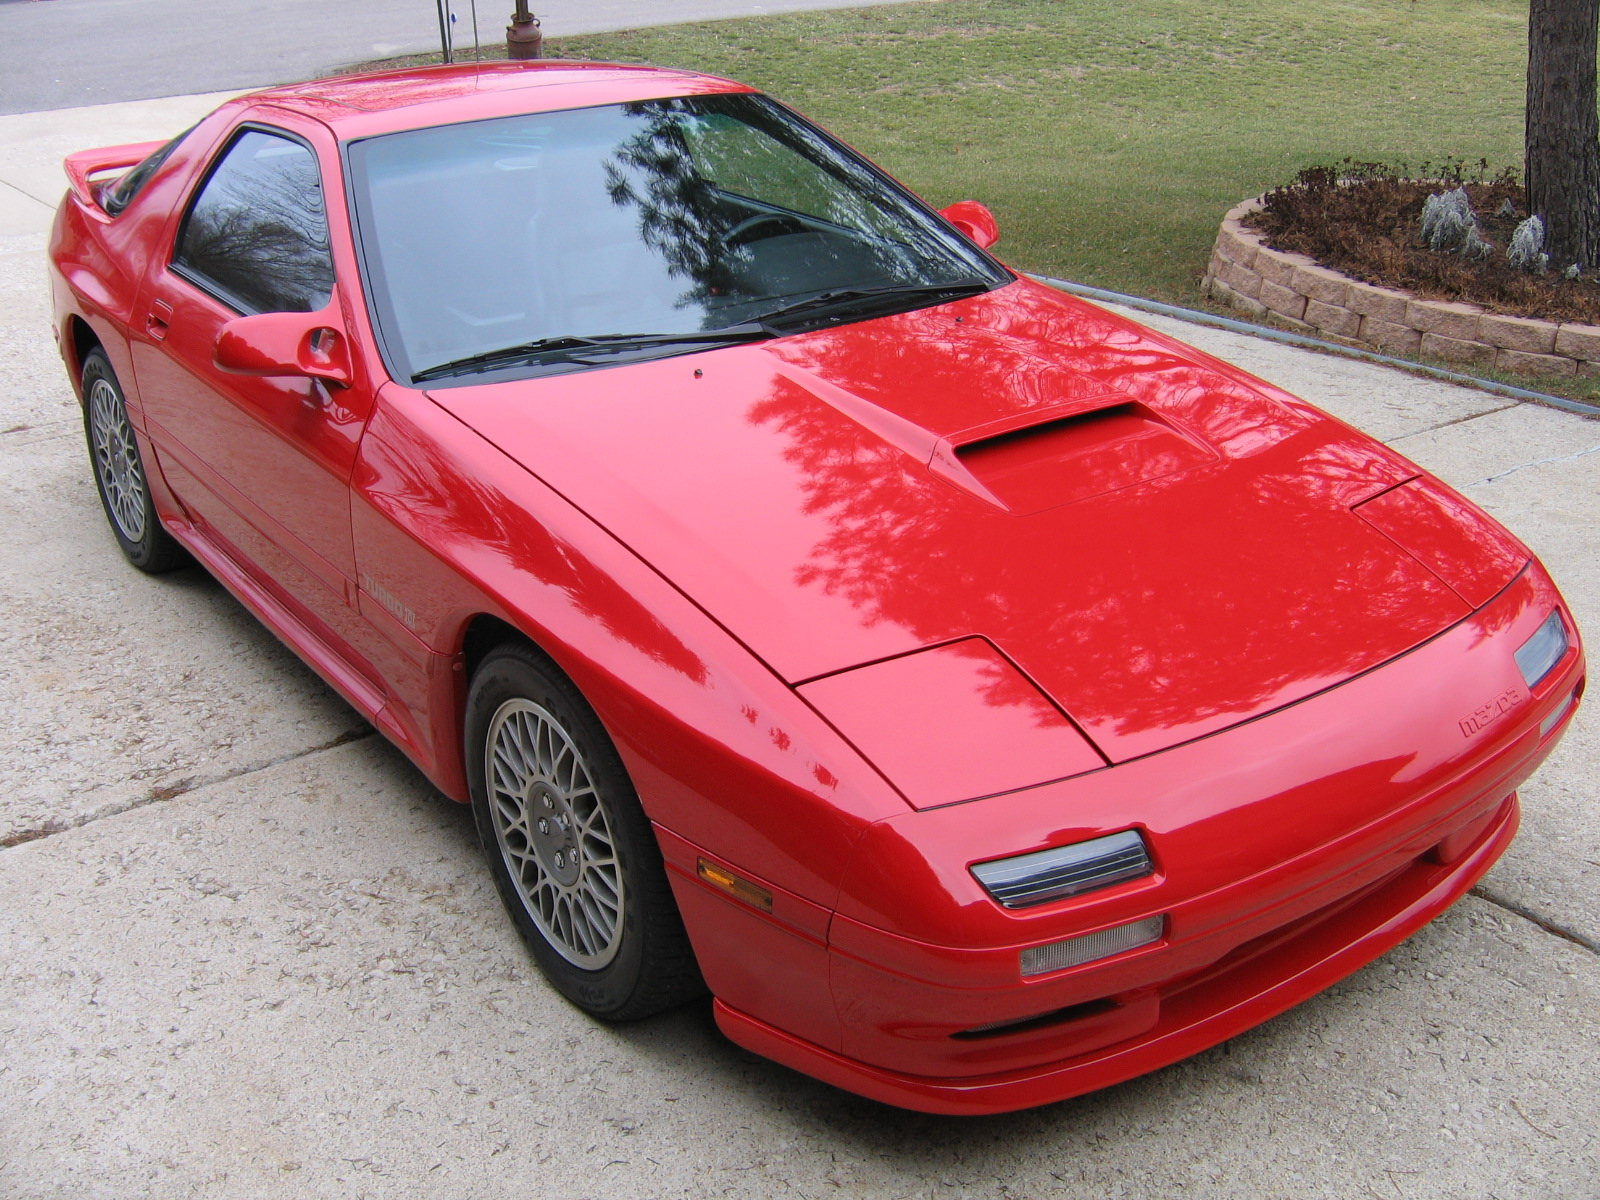 1989-mazda-rx-7-was-just-sold-for-record-value